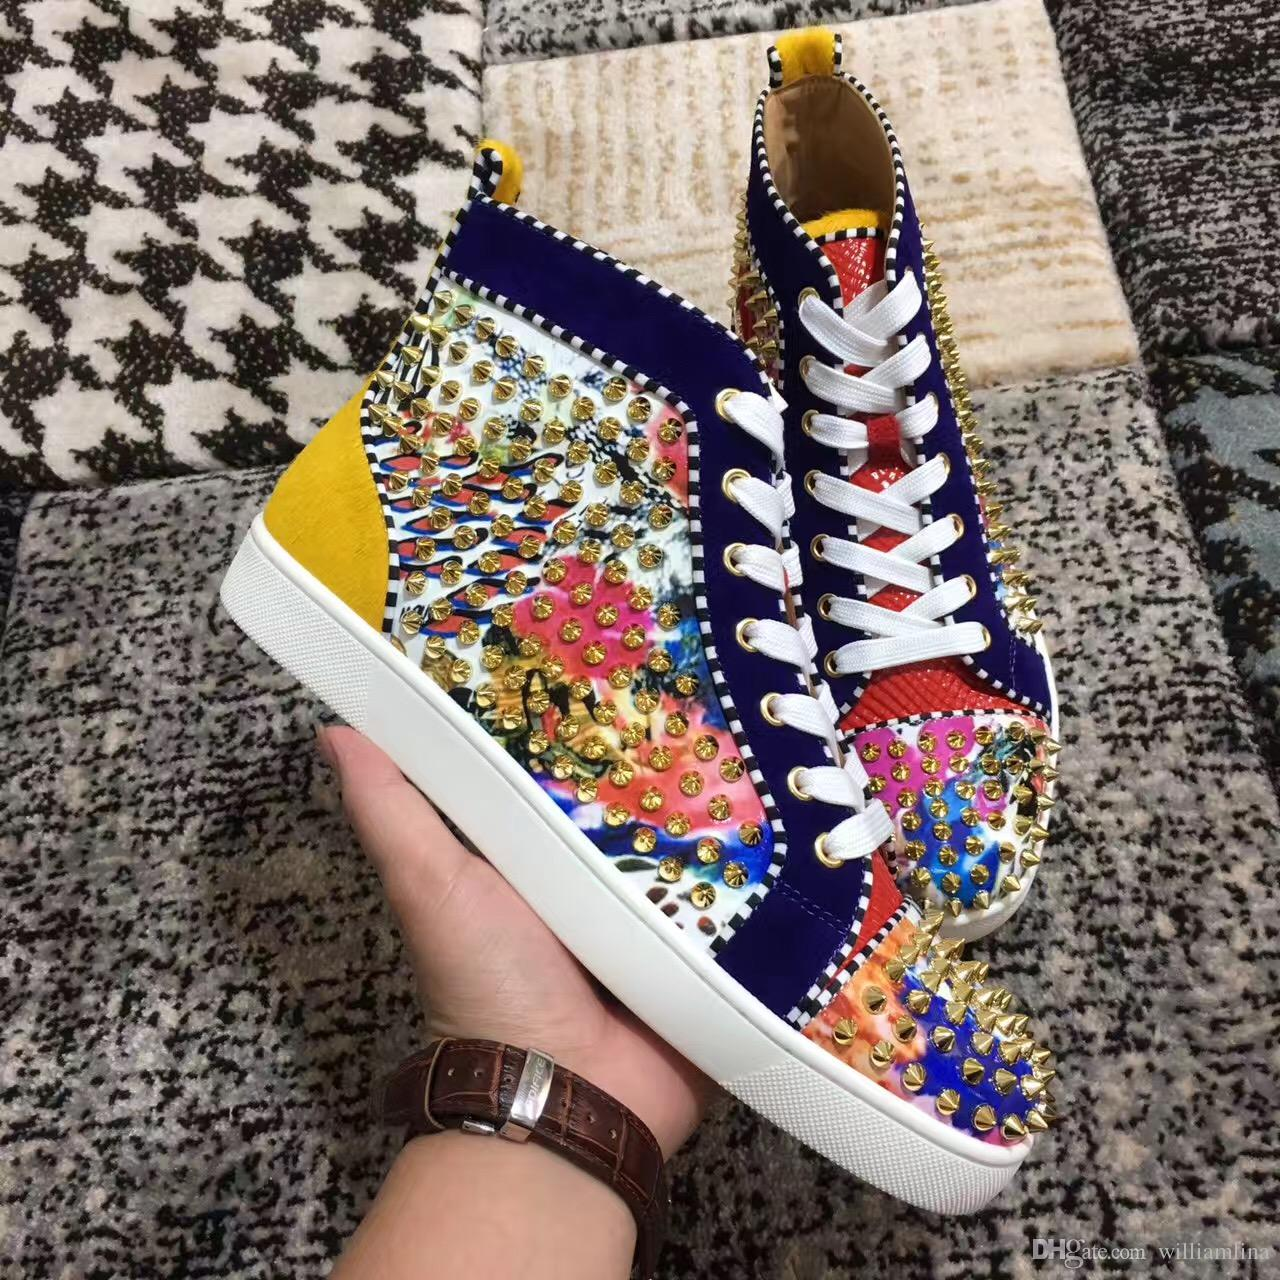 Gold Spikes Flower Leather Women,Men Unisex Sneakers Shoes Design High Top Red Bottom Shoes Stud Casual Walking Flats Size 35-46